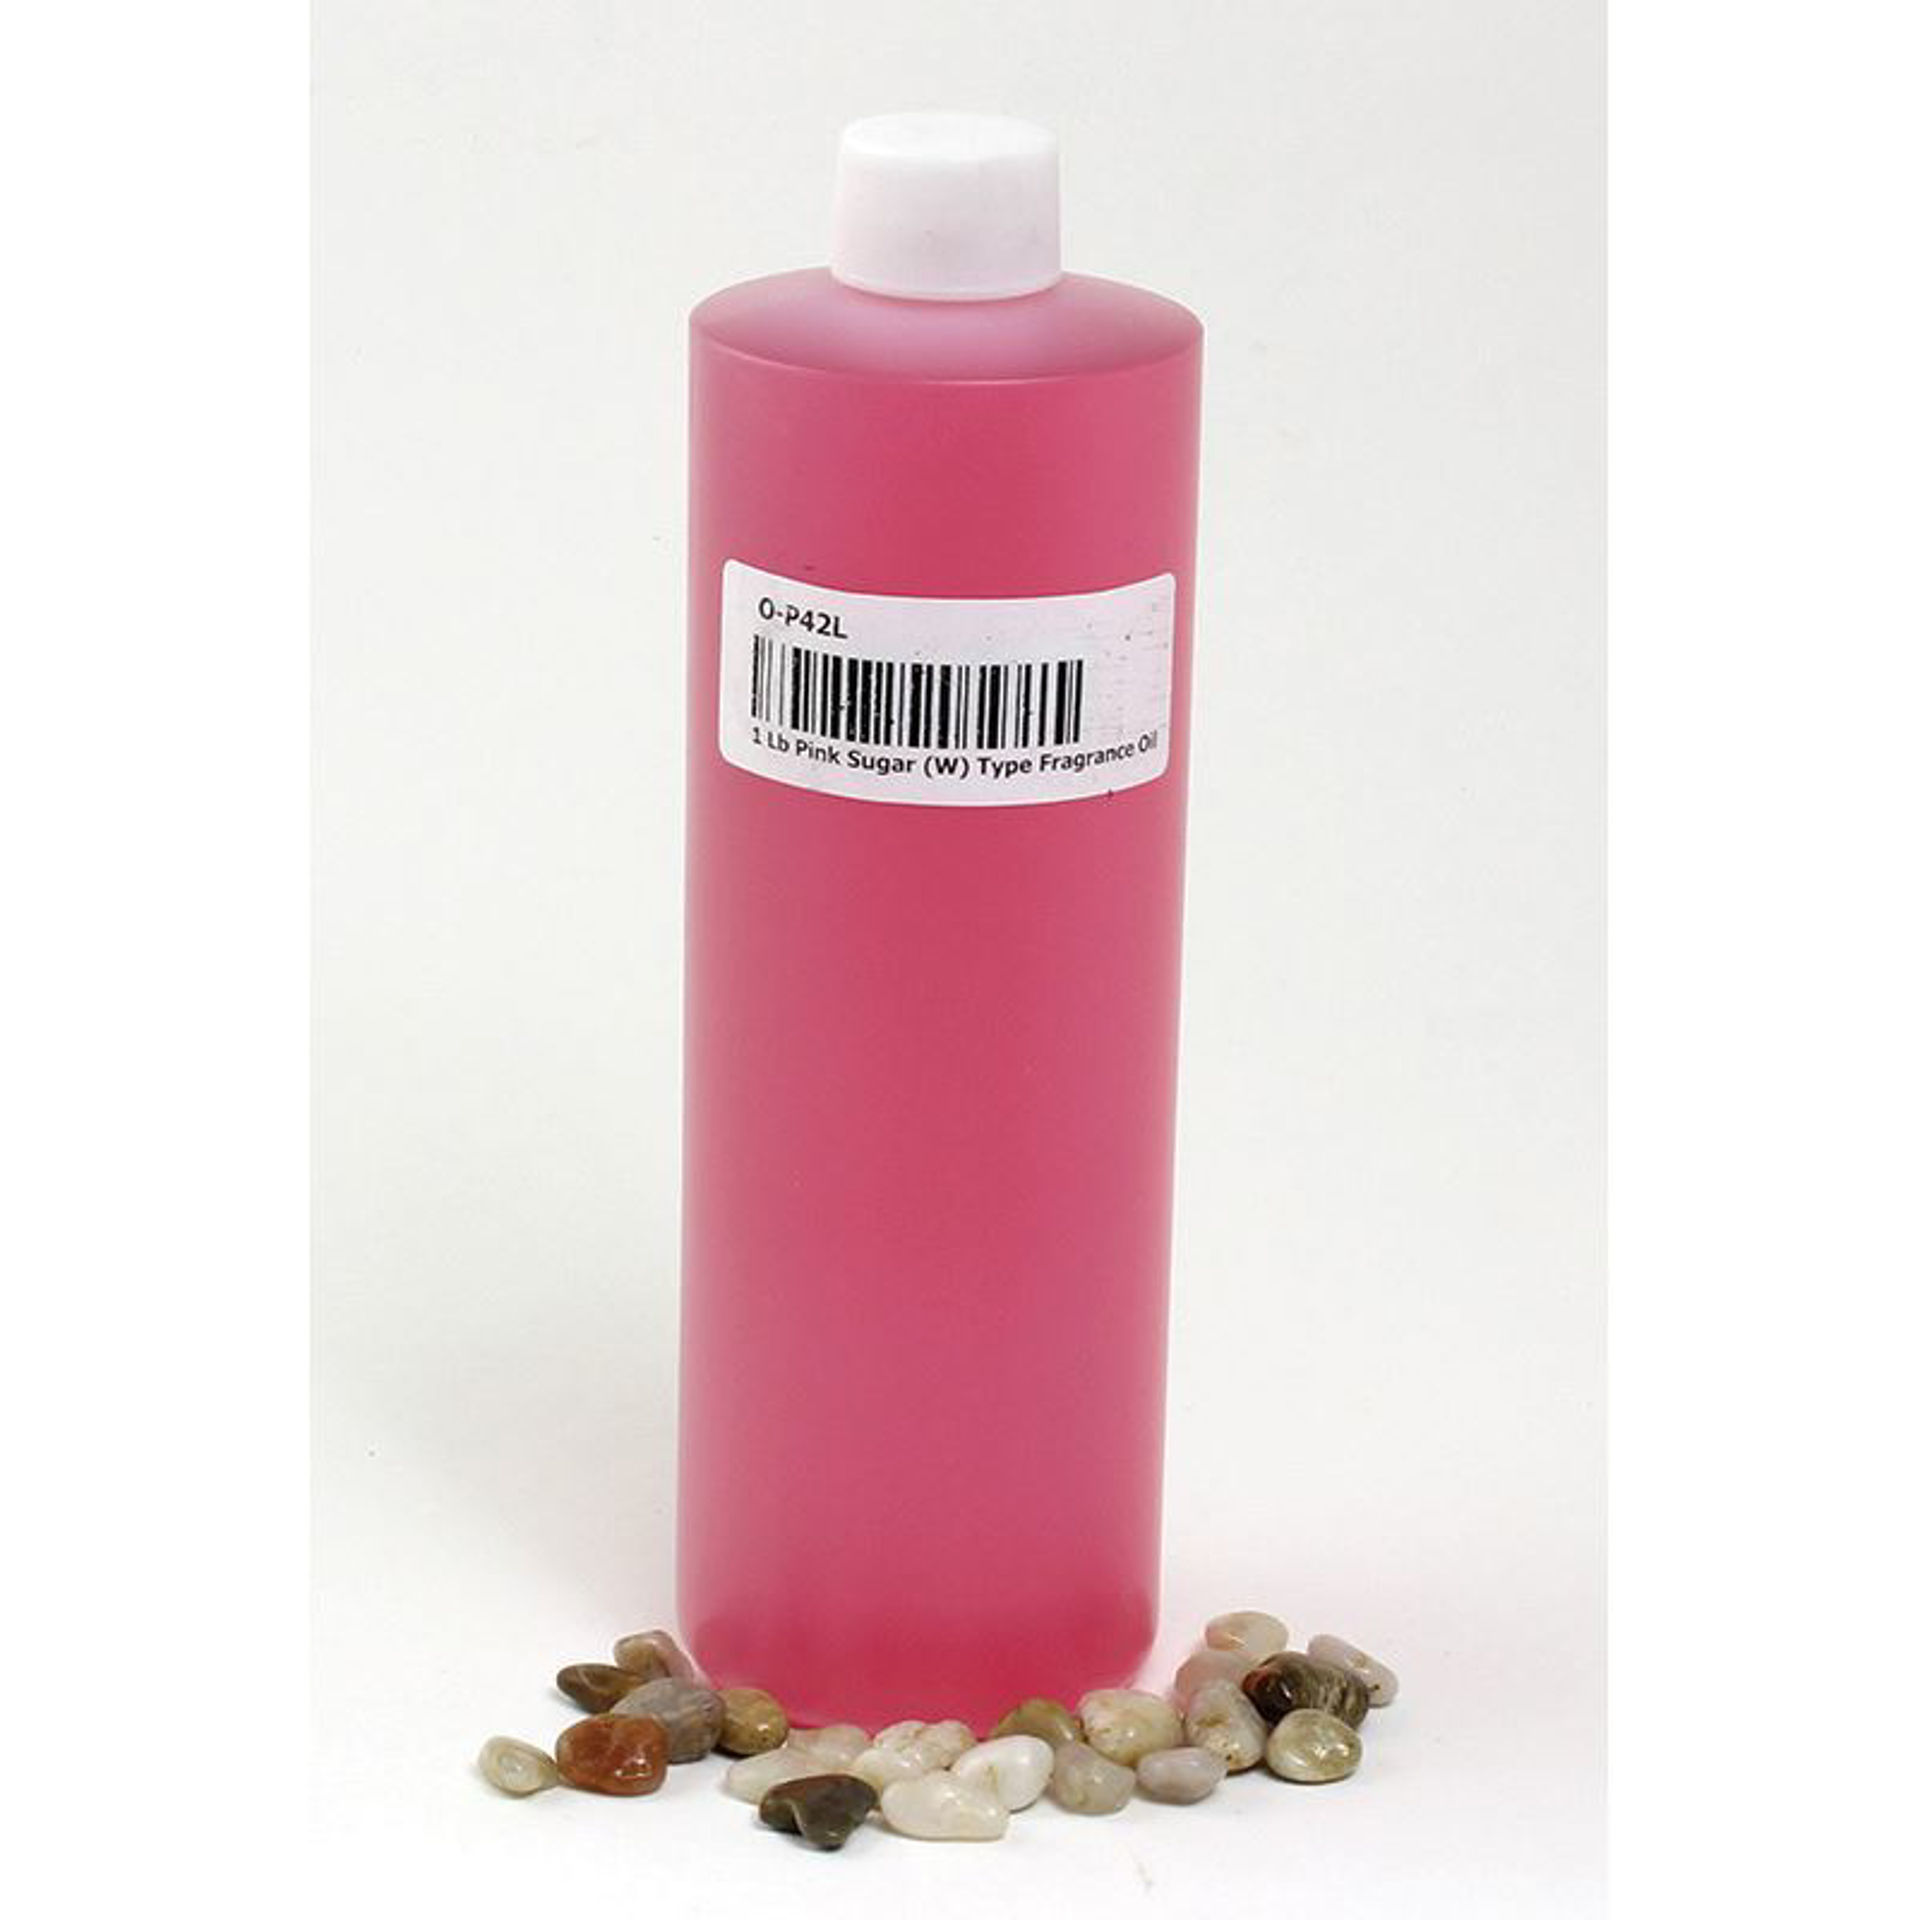 Picture of 1 Lb Pink Sugar (W) Type Fragrance Oil